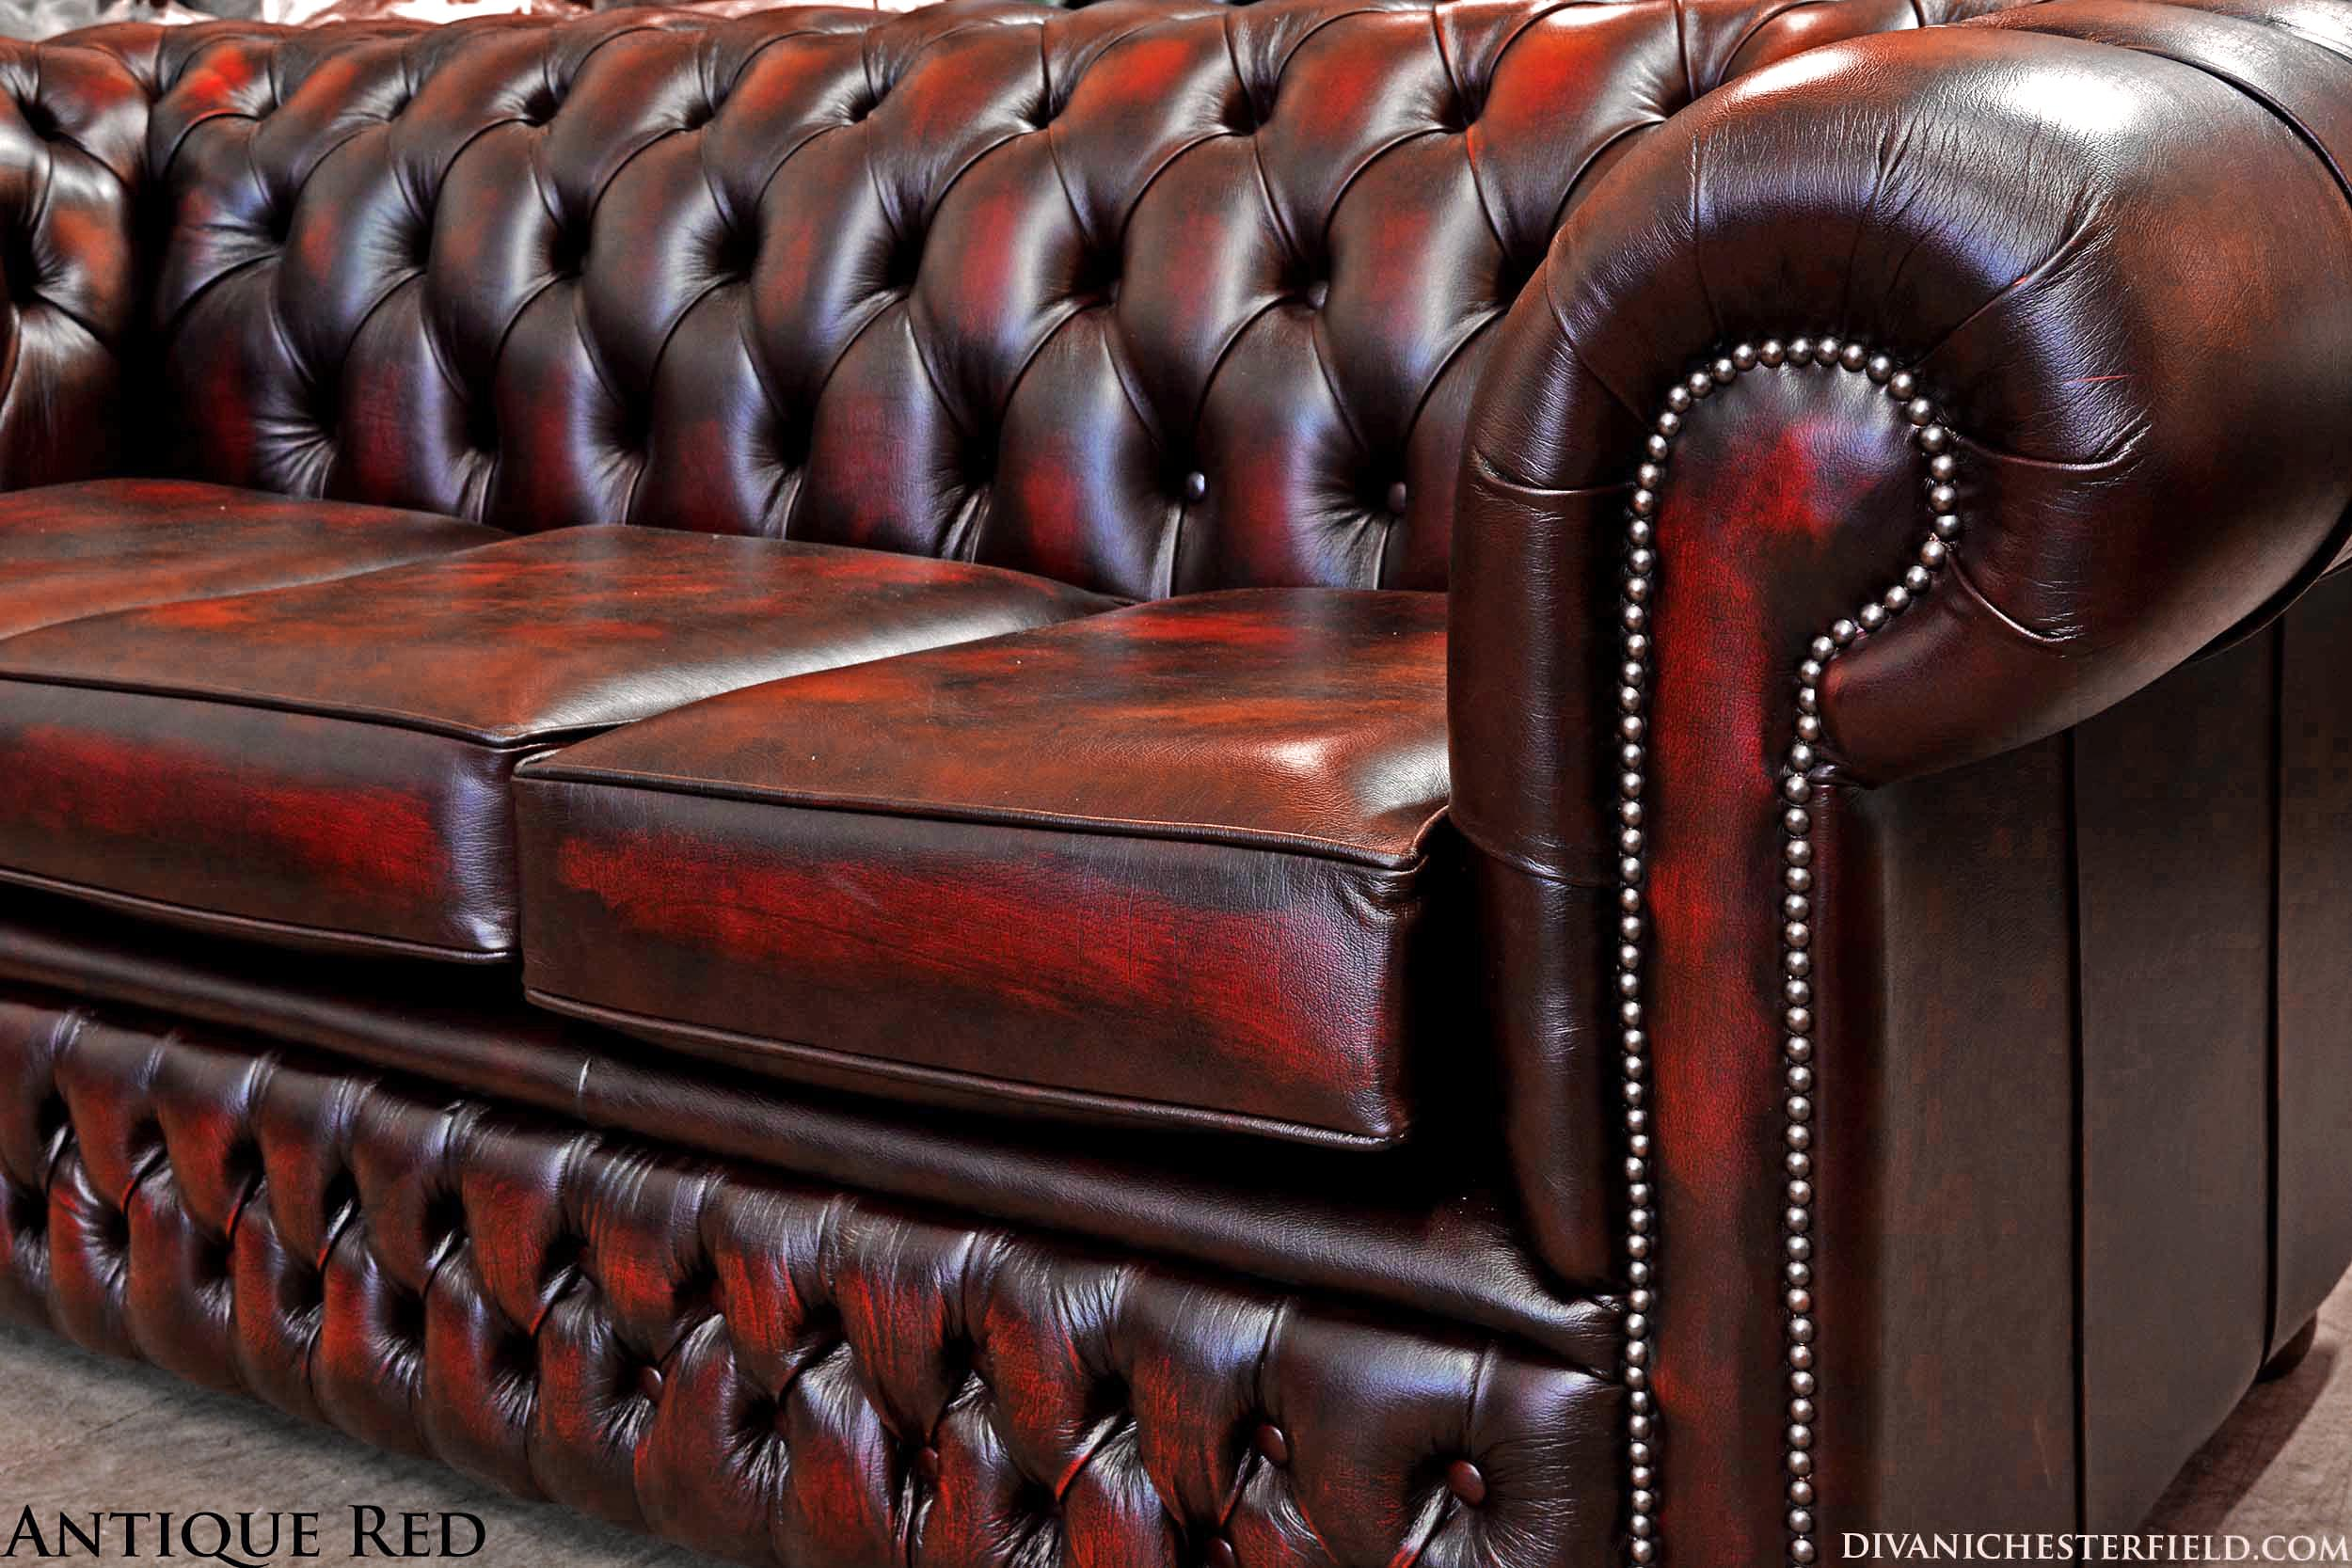 Chesterfield Divano Originale.Divano Chesterfield Club Nuovo Originale Inglese